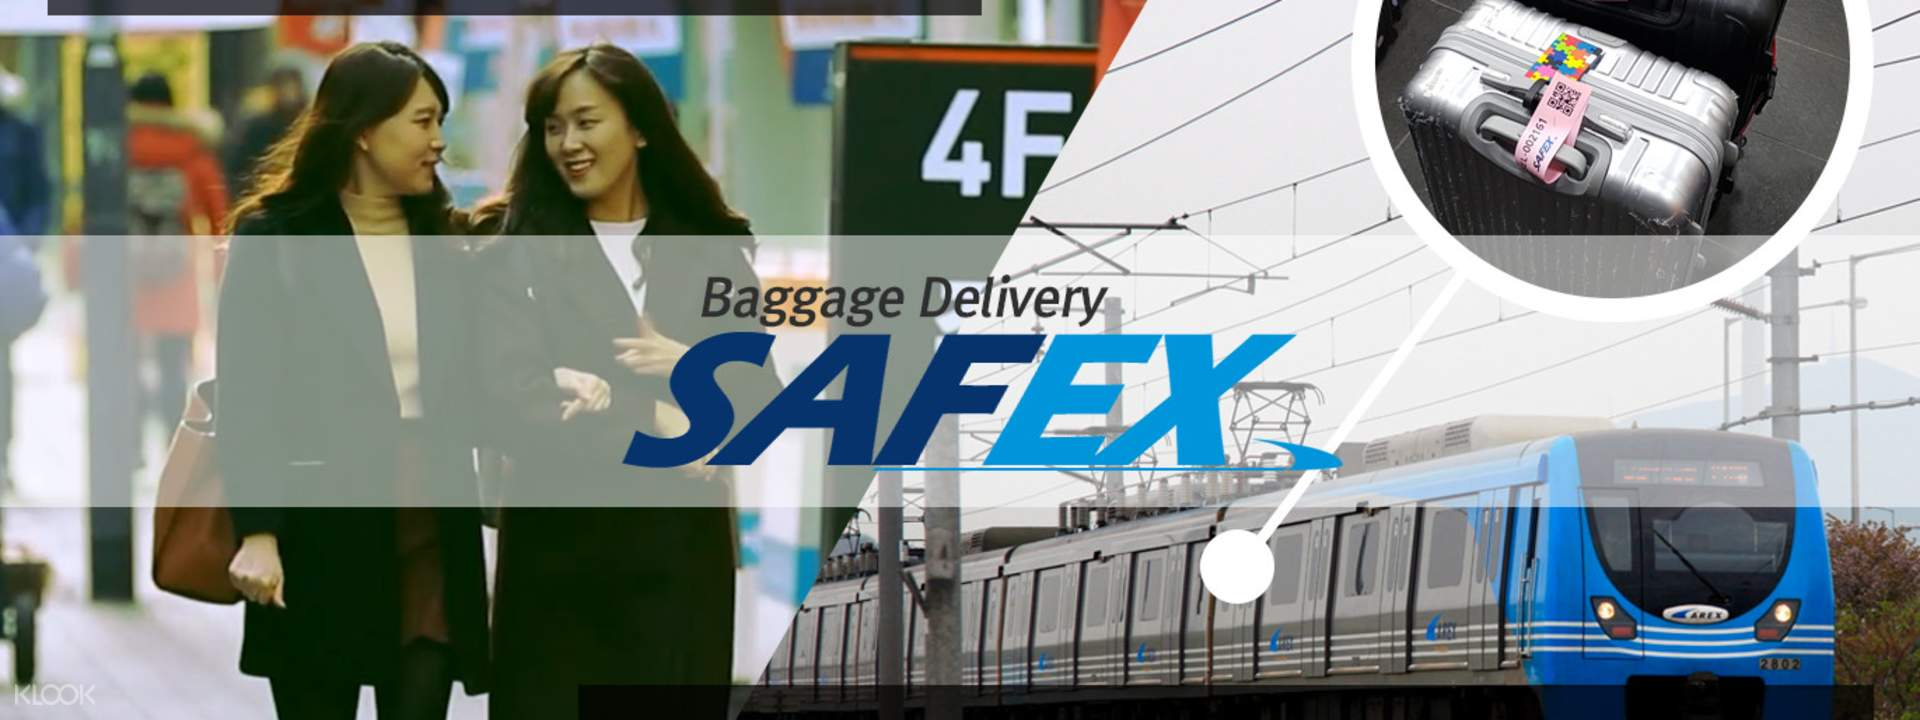 Safex Airport Luggage Services in Seoul, South Korea - Klook